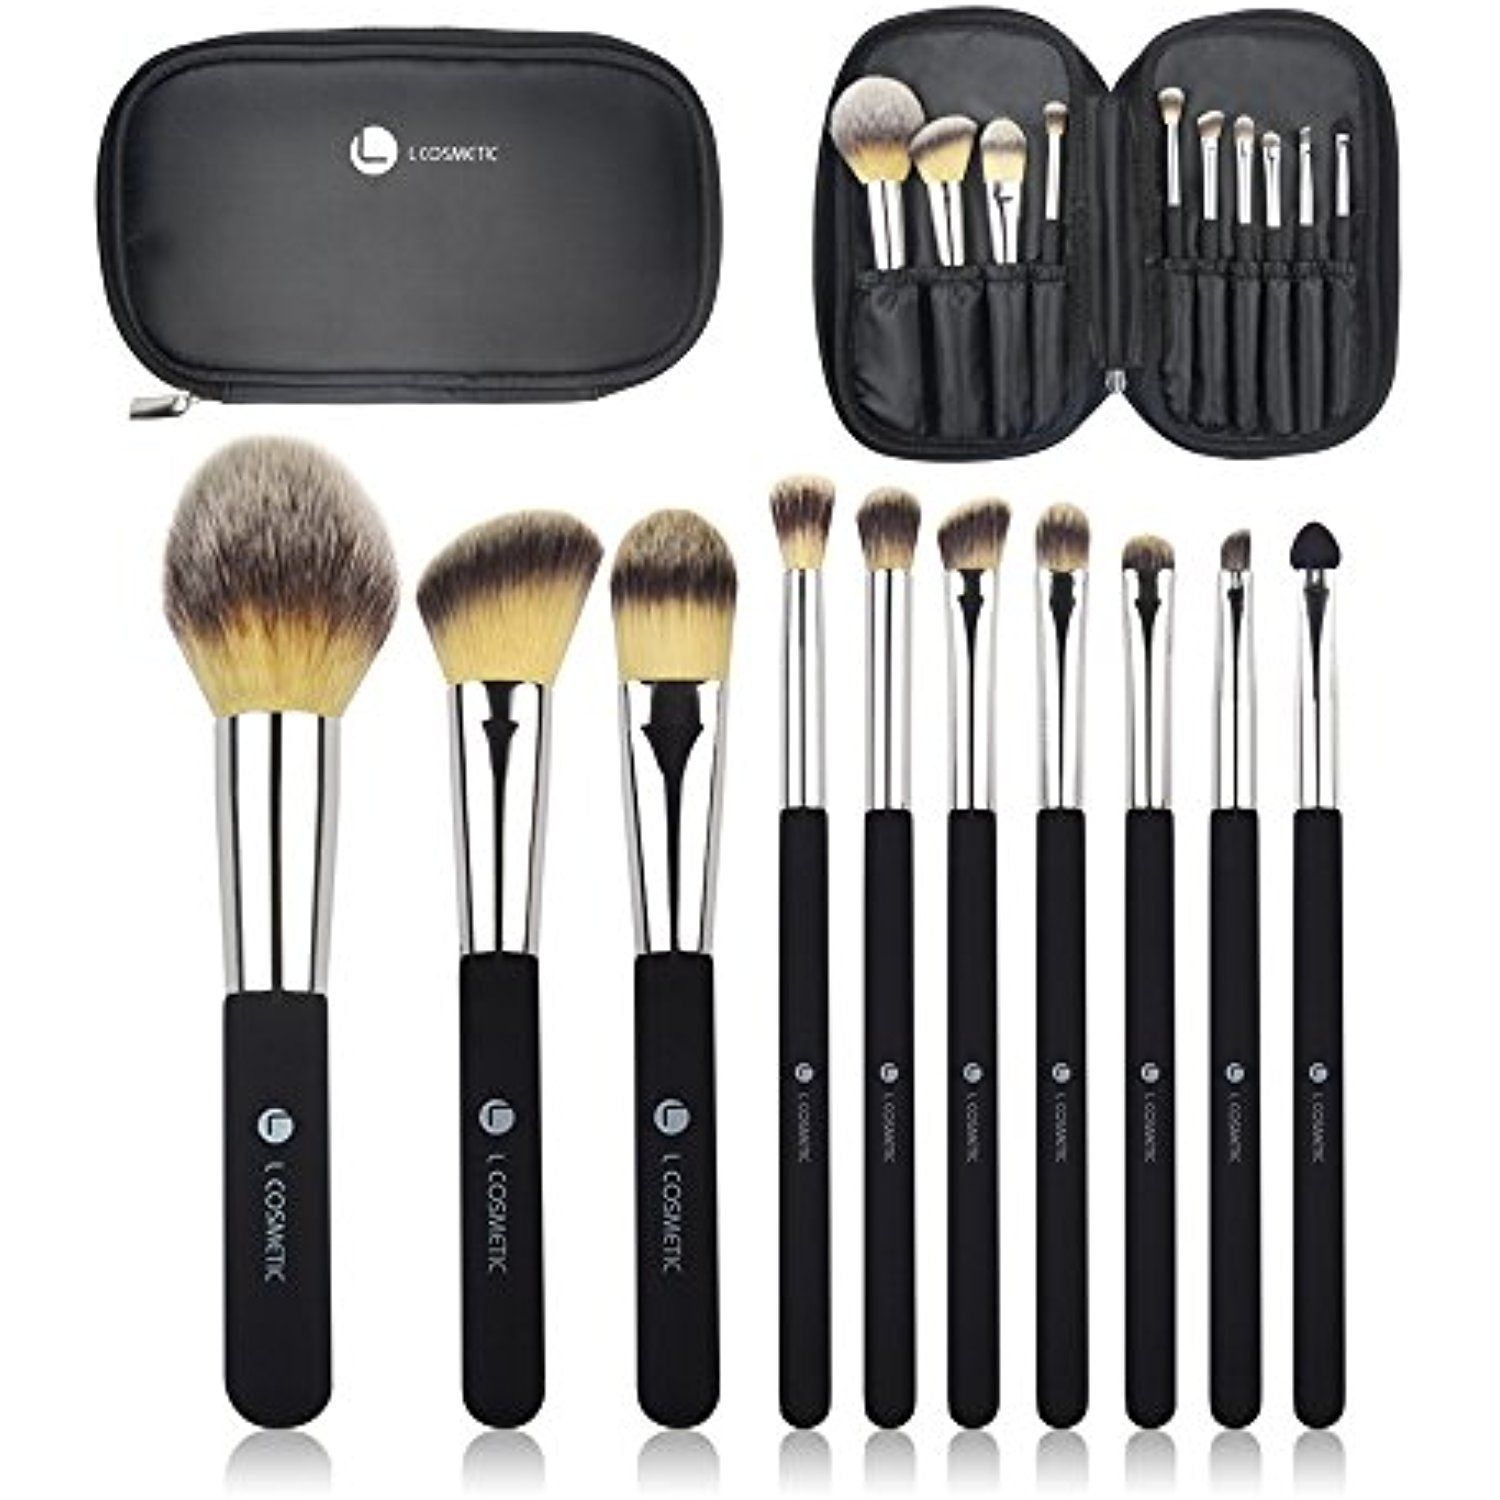 c5425d87d377 L COSMETIC(TM) 10 Piece Makeup Brushes Set Professional Eyeshadow ...